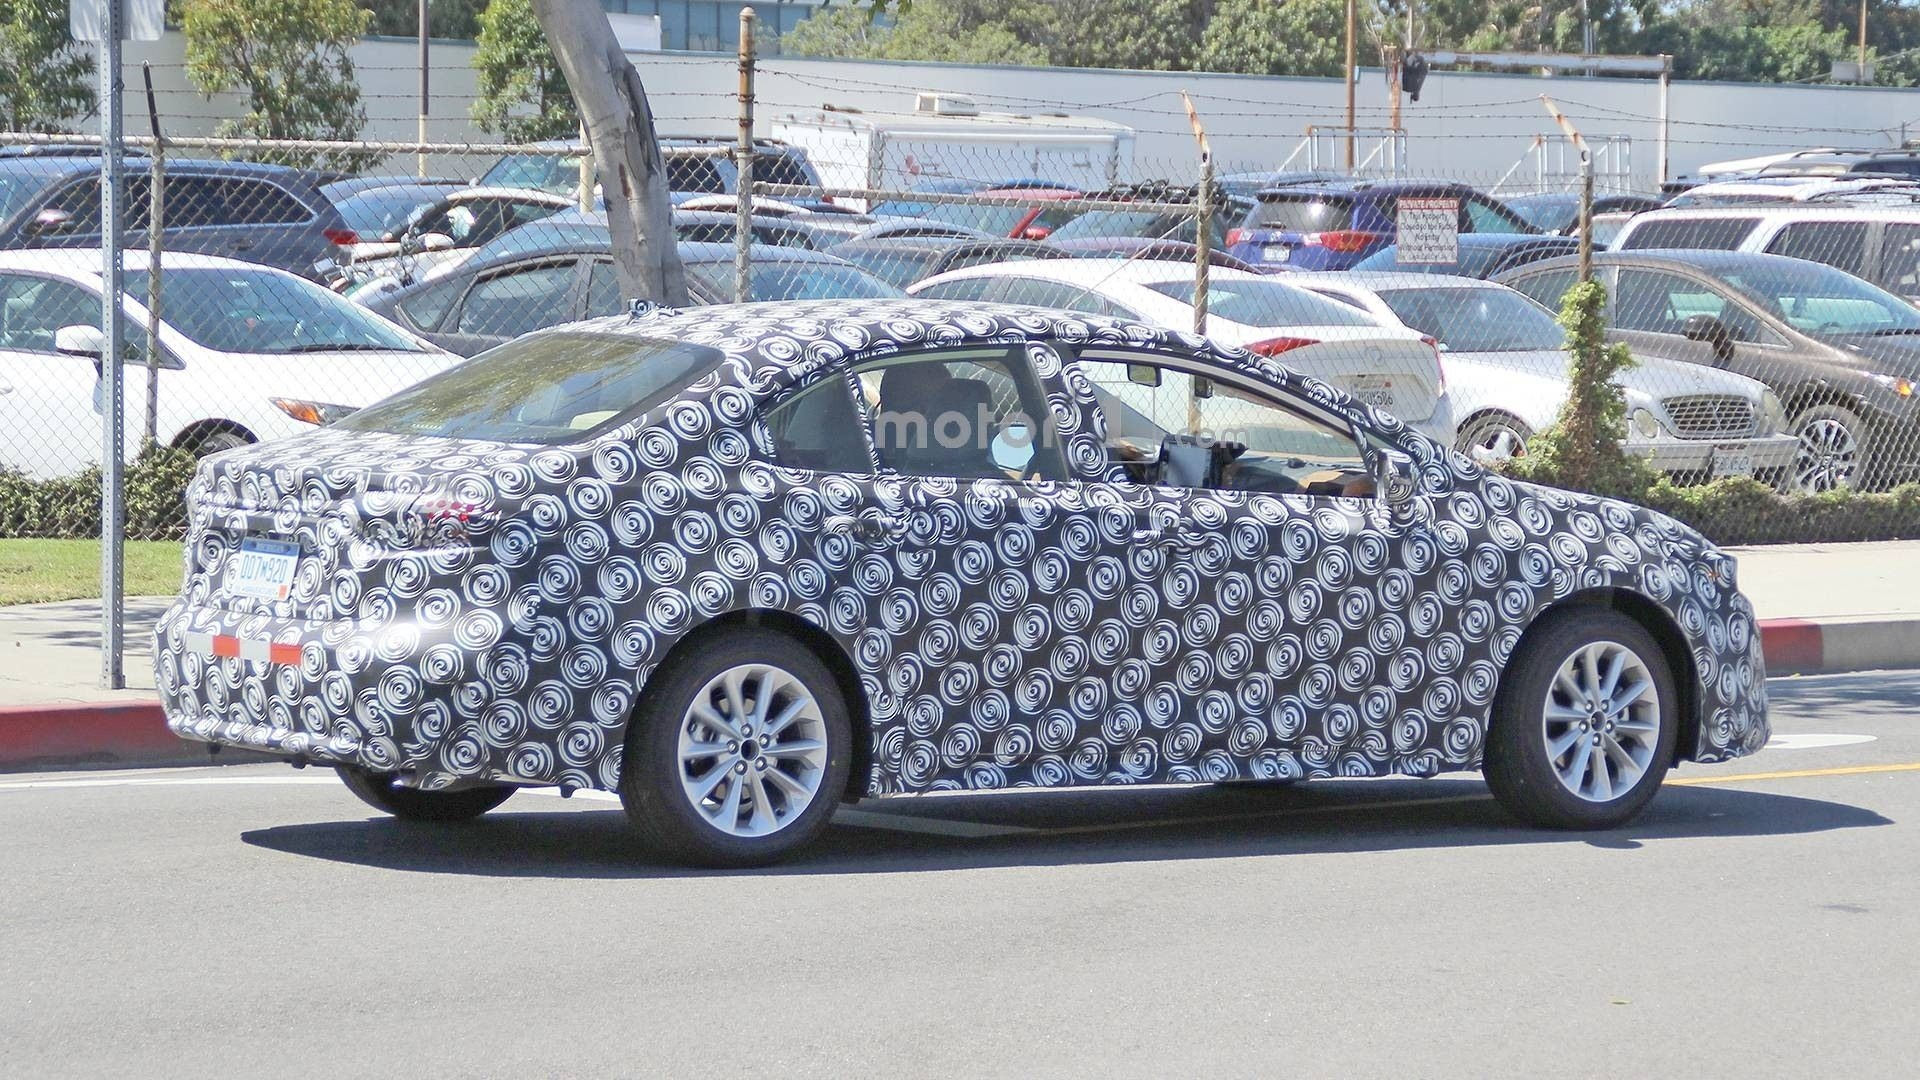 81 New 2020 New Toyota Avensis Spy Shots Model